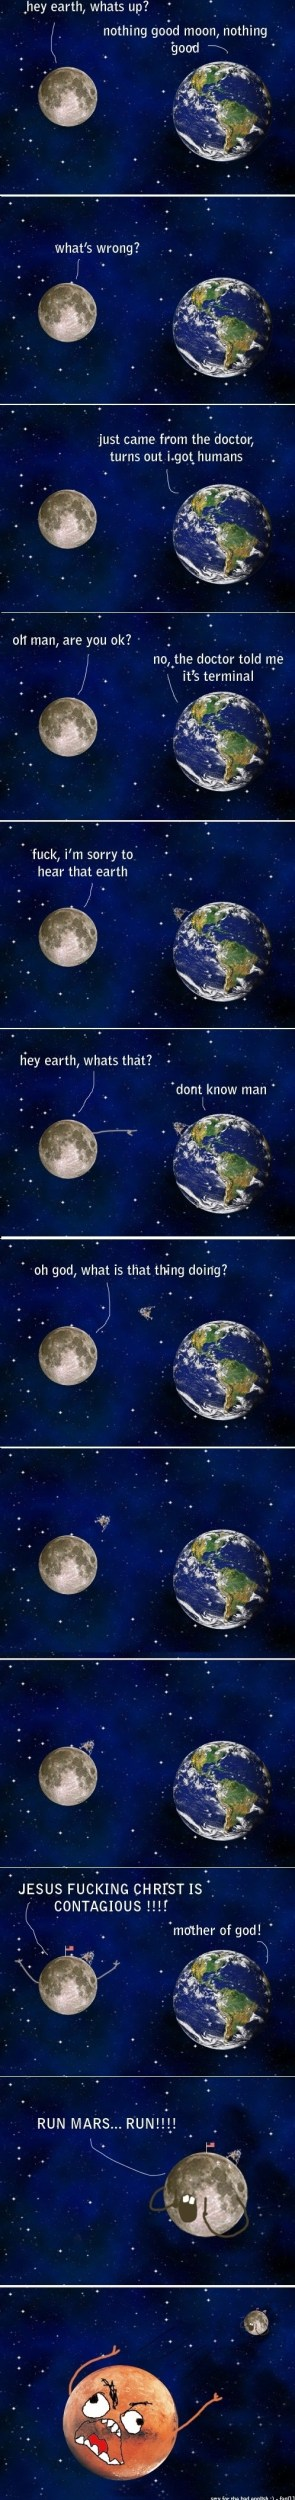 Hey Earth? What's up?